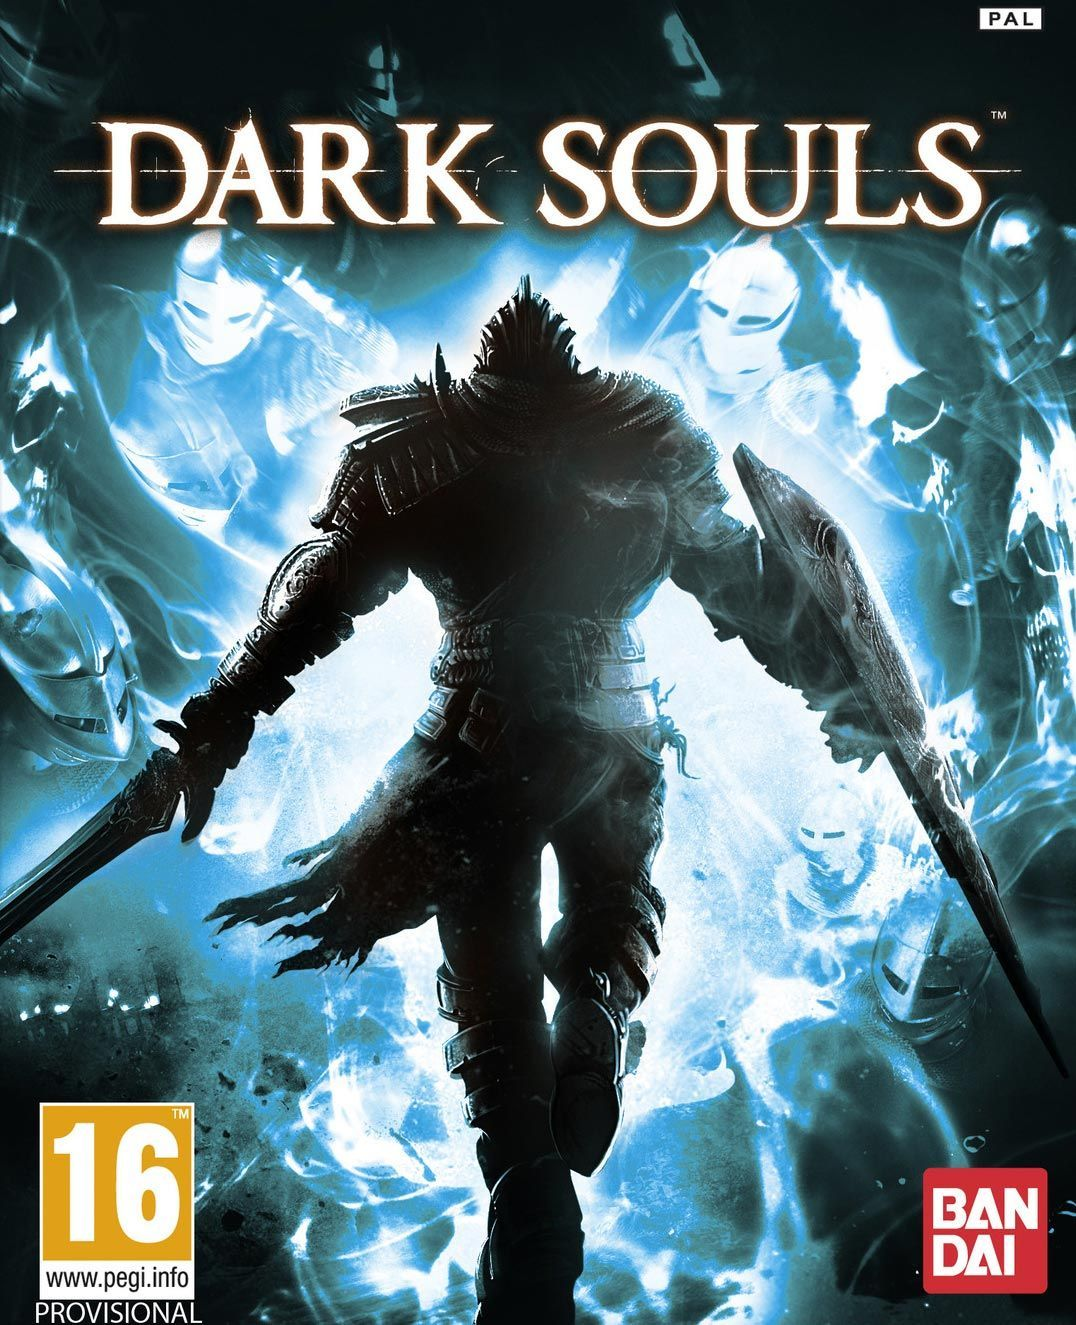 Dark Souls 2011 Ps3 Dark Souls Demon Souls Bandai Namco Entertainment